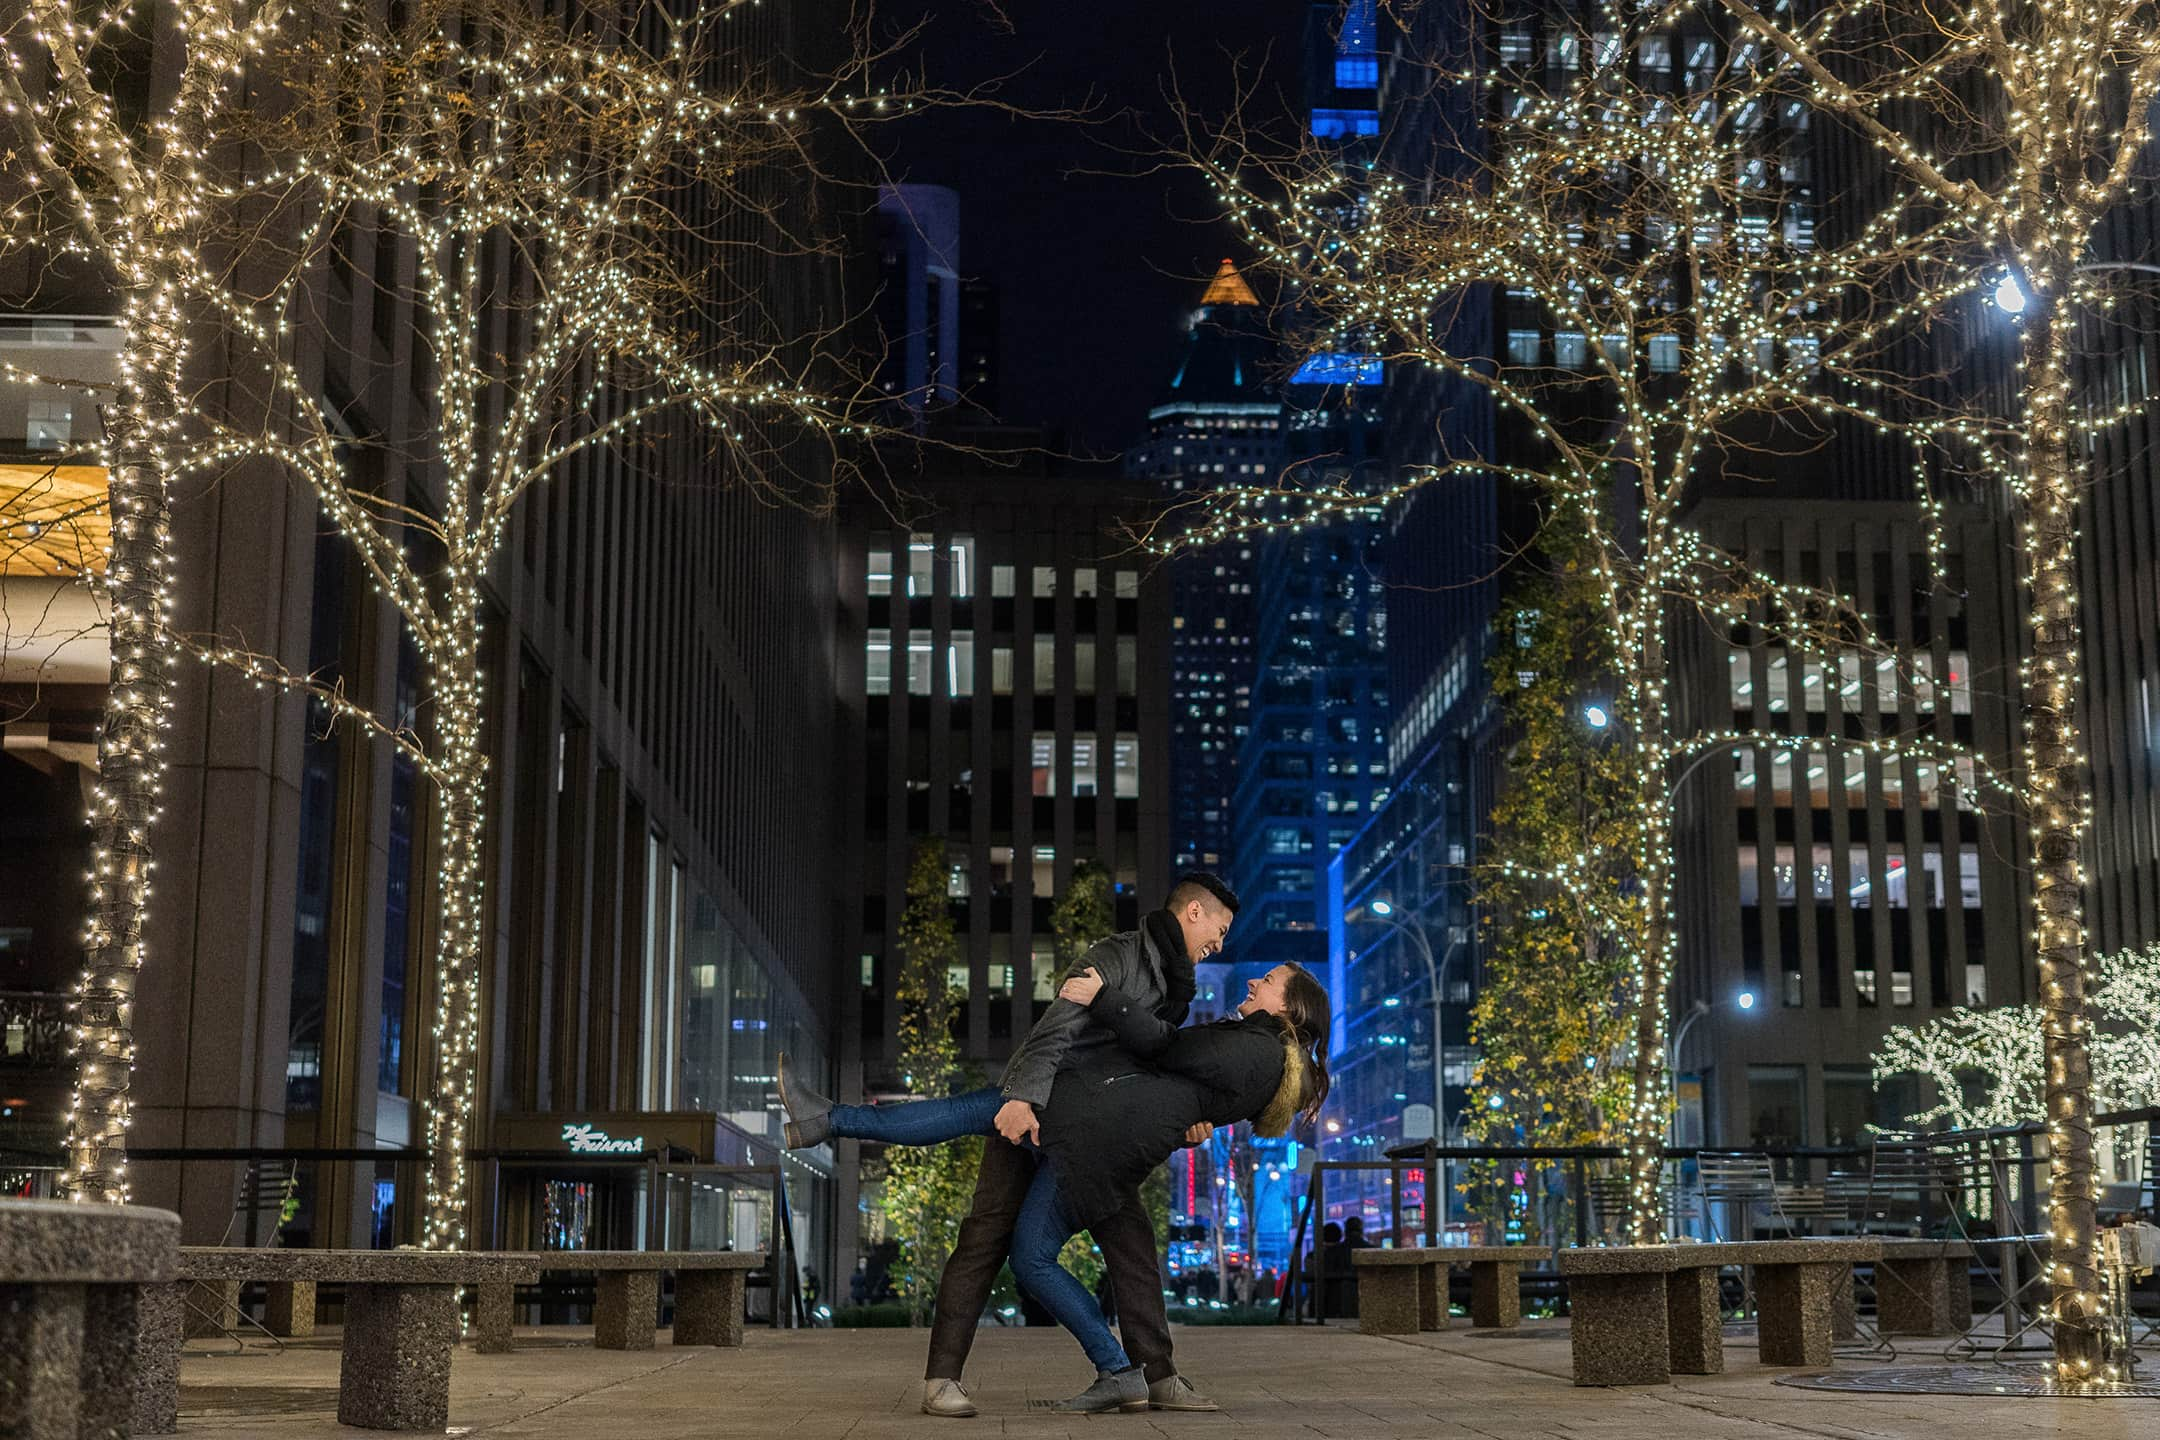 man dips a woman in front of Christmas lights in New York City